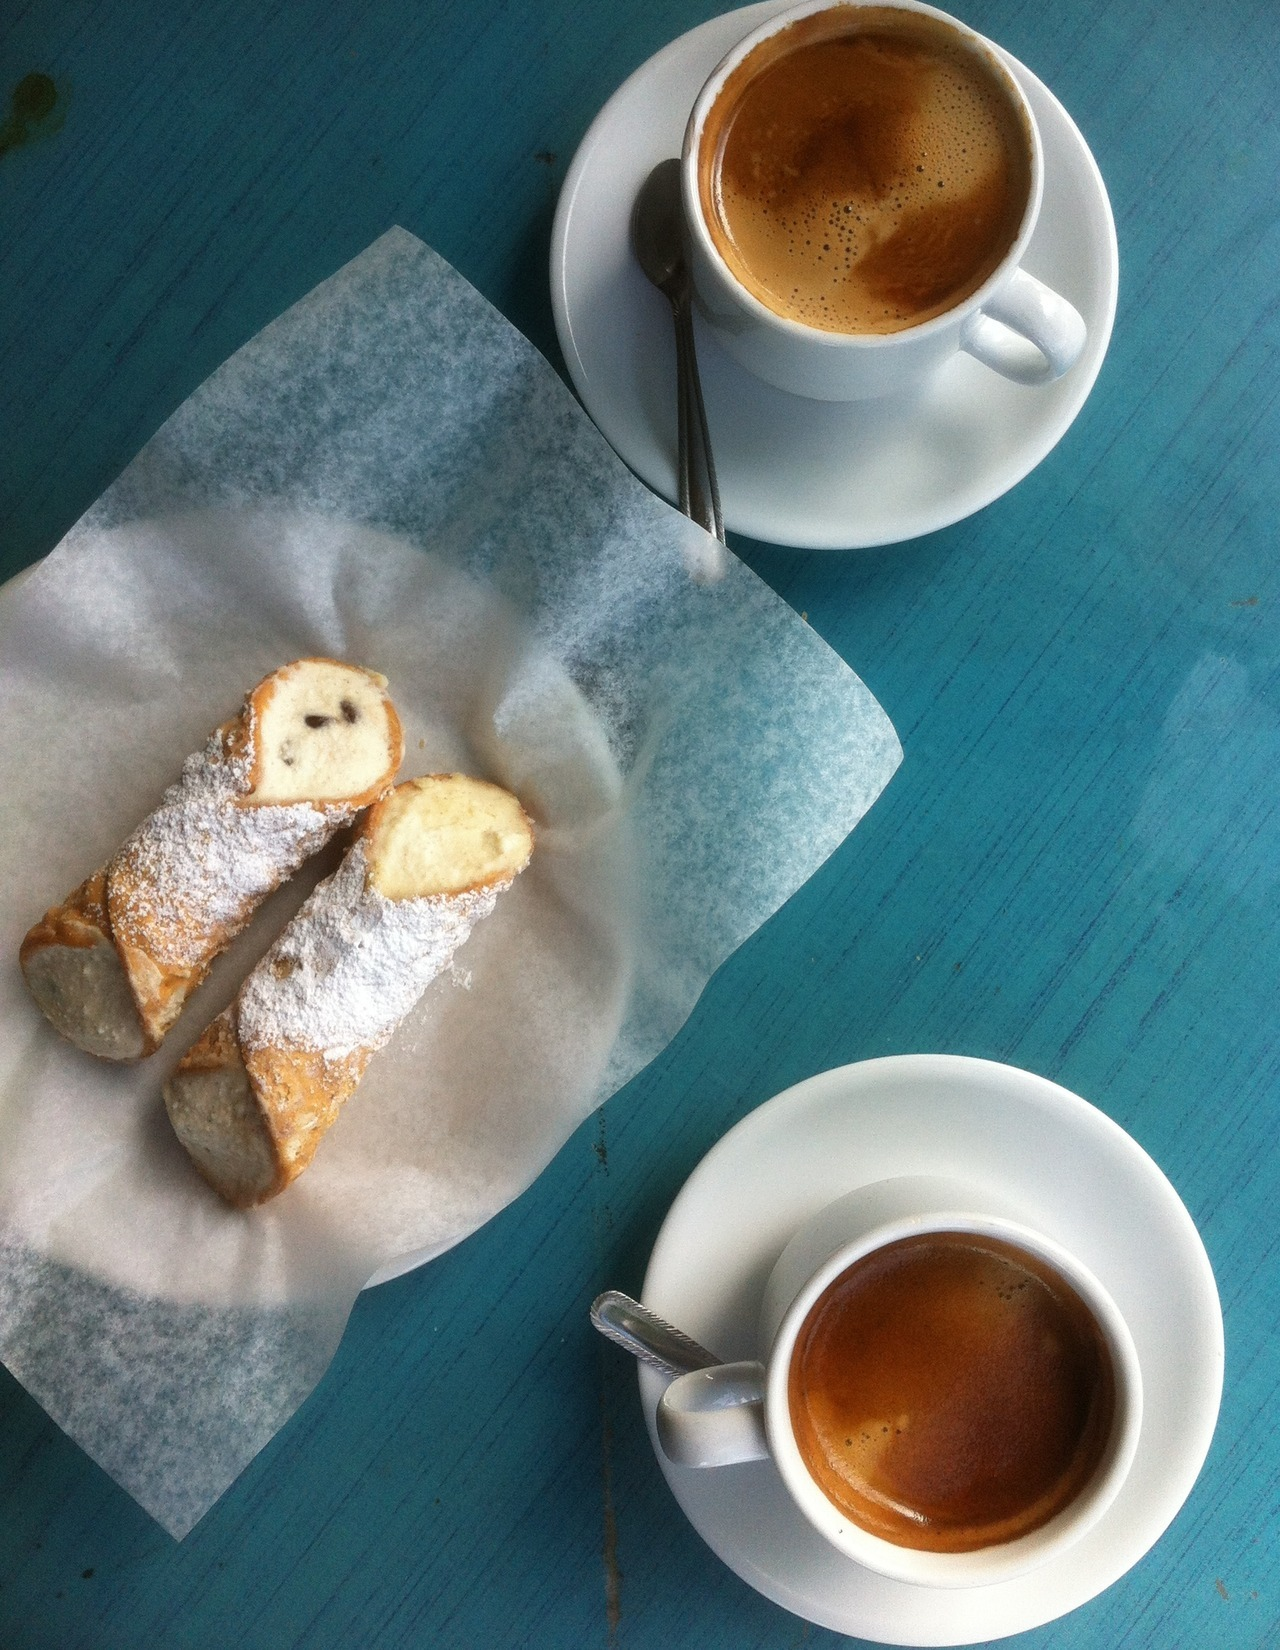 mzgaloreadventures:  coffee and cannoli for two <3  Dream date!